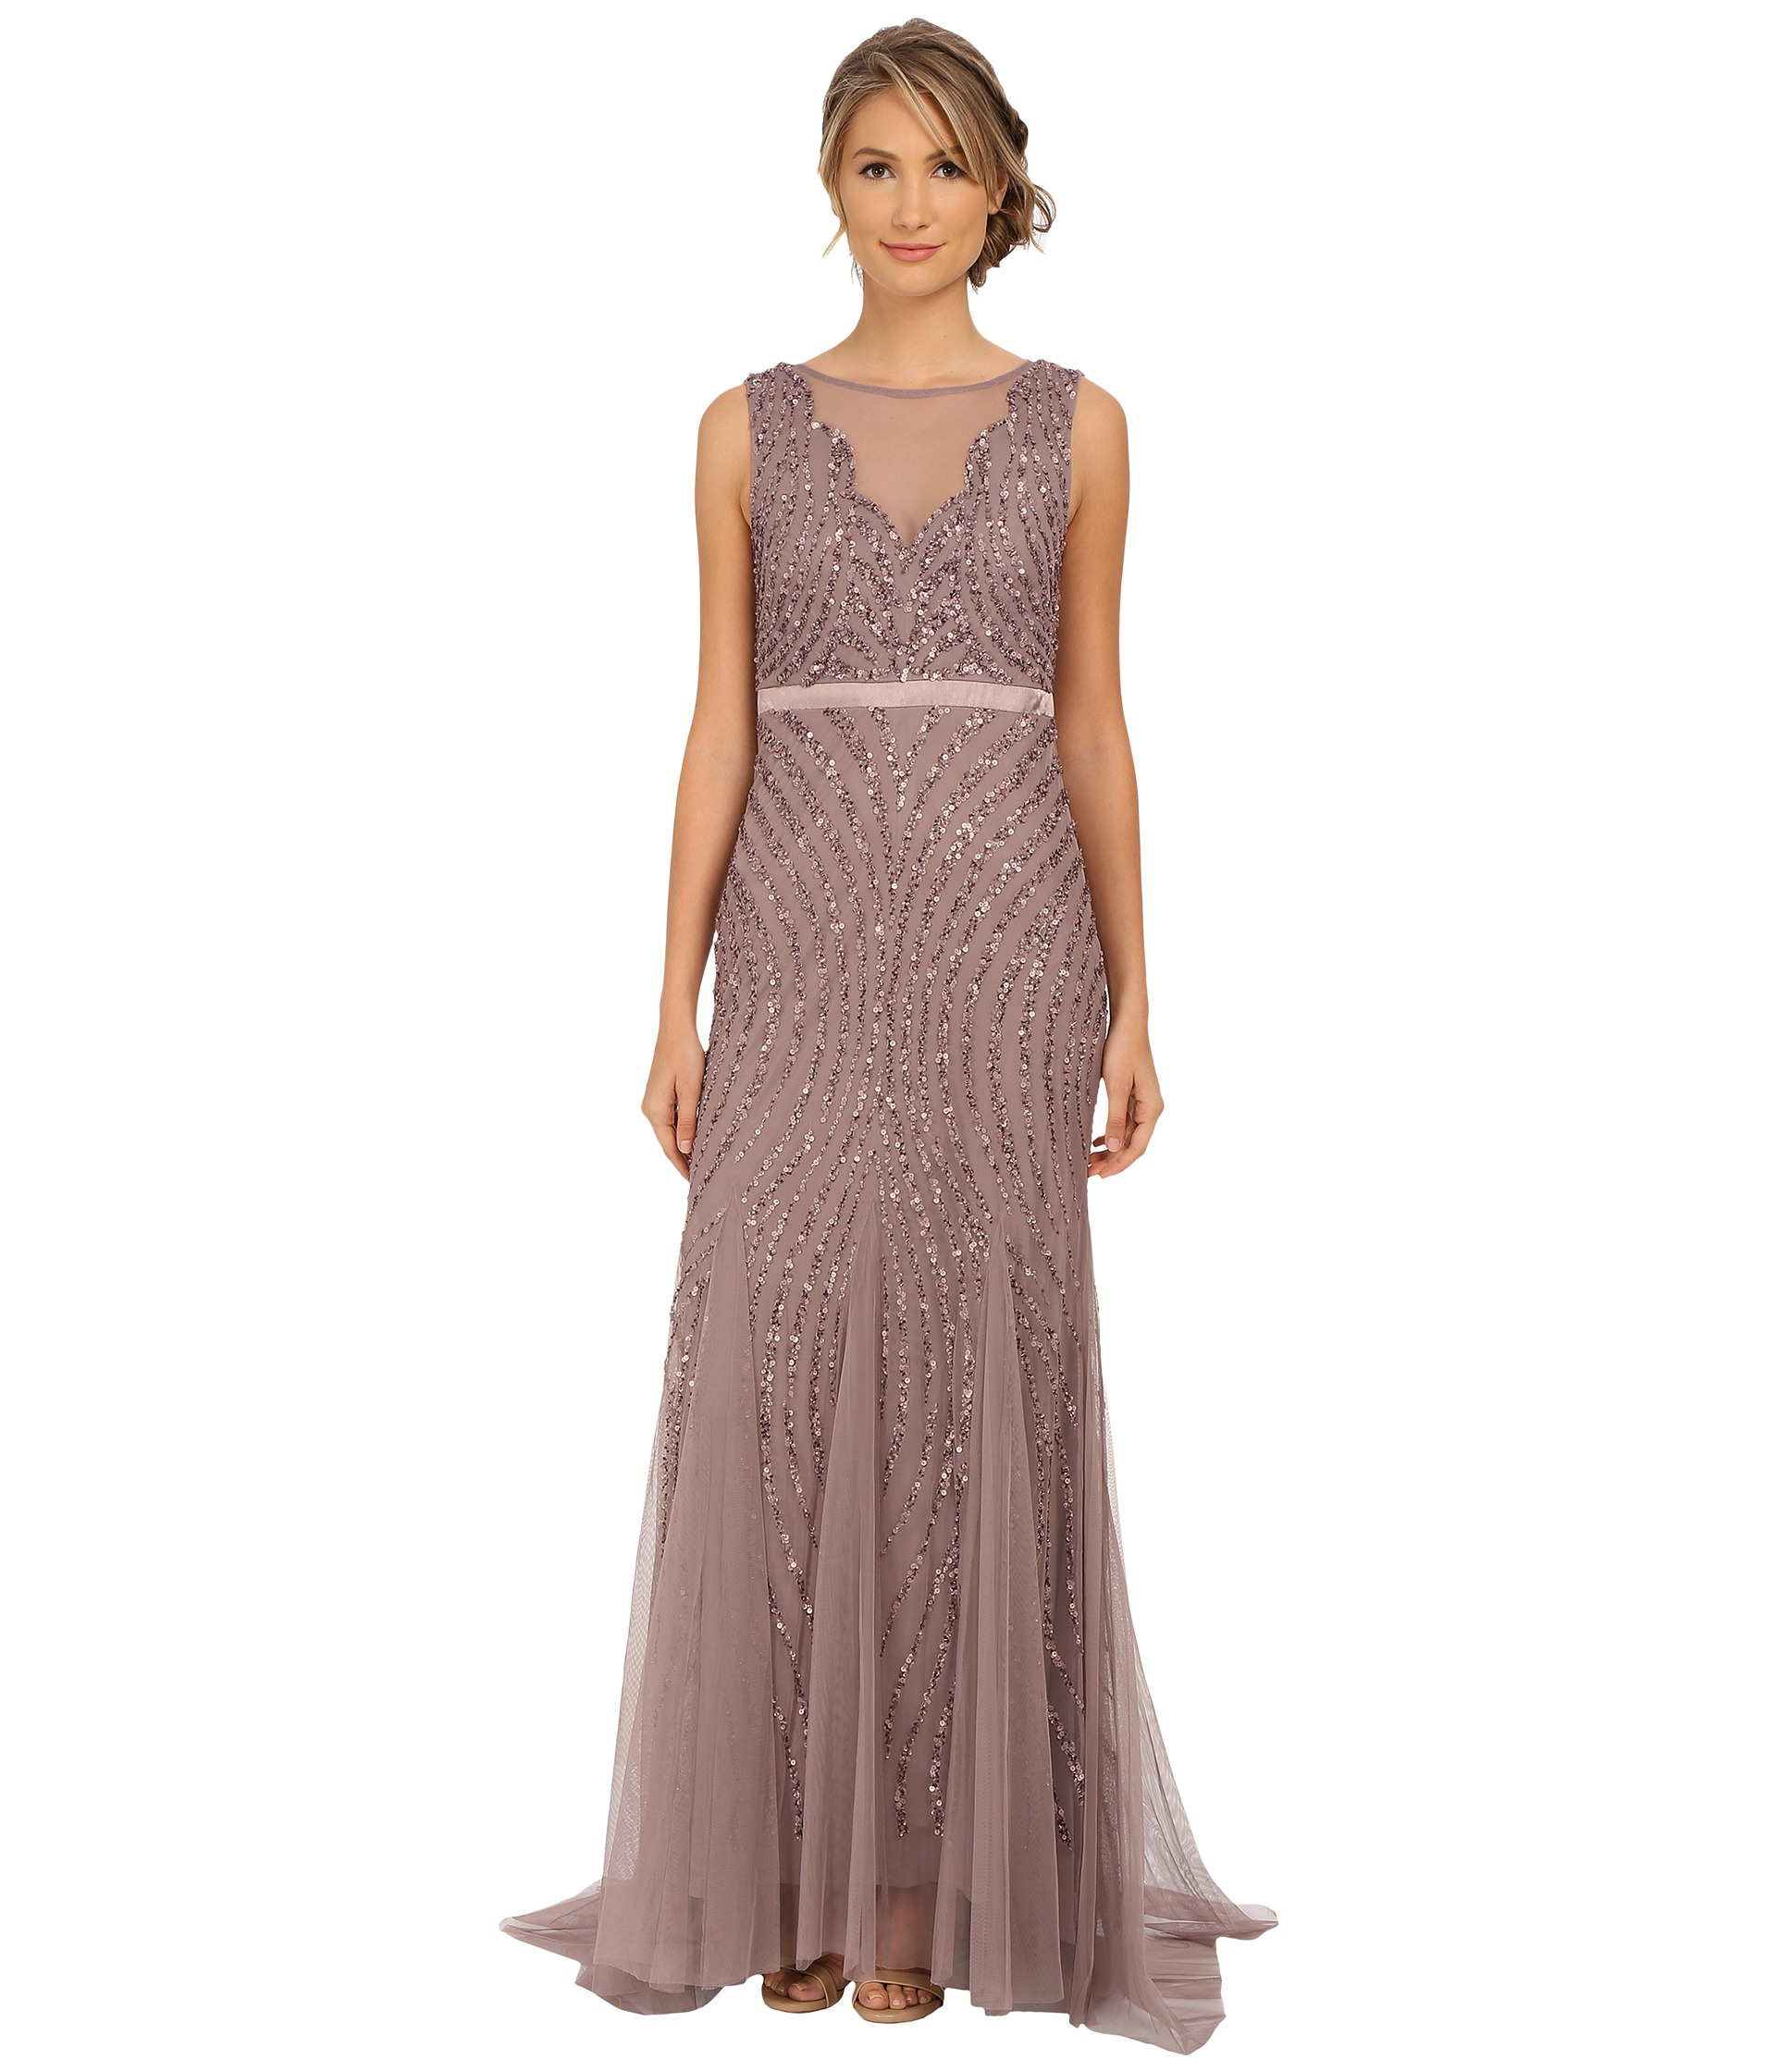 Lyst - Adrianna Papell Beaded Mermaid Gown in Purple